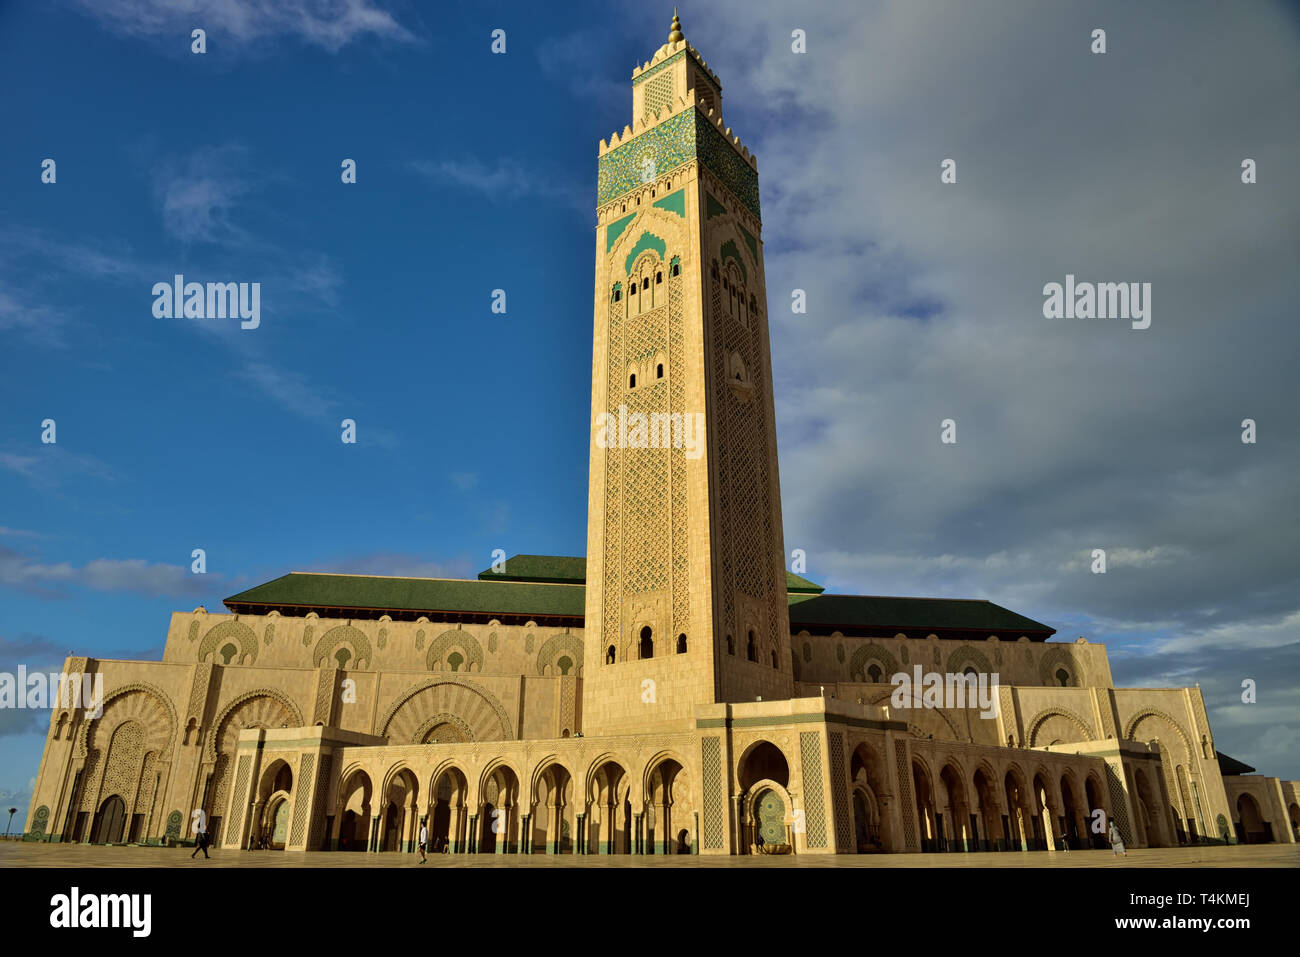 The qibla wall is perpendicular to the naves which is said to be an unconventional layout, given that it is customary for the rows of worshipers facin - Stock Image